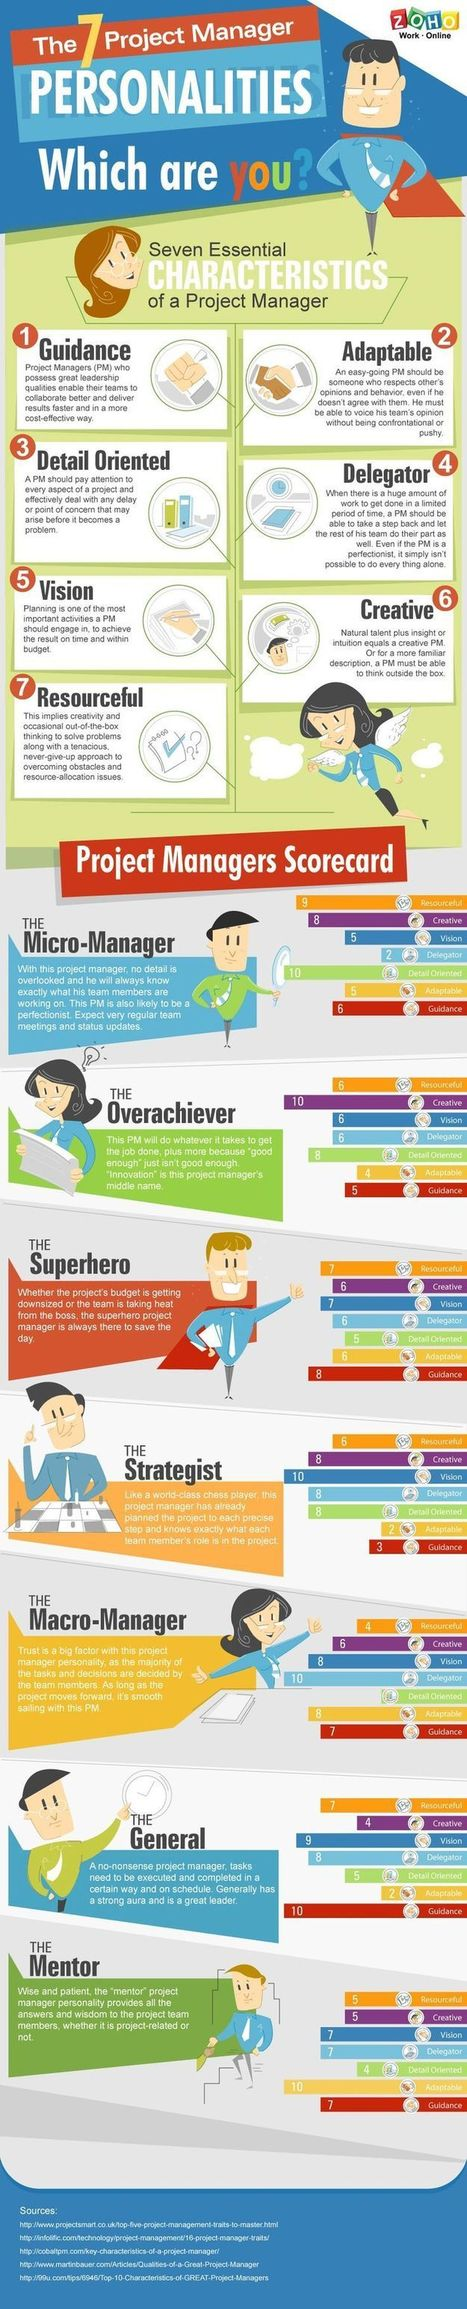 7 Project Manager Personalities-Which Are YOU? [Infographic] | Resources for DNLE for 21st Century | Scoop.it